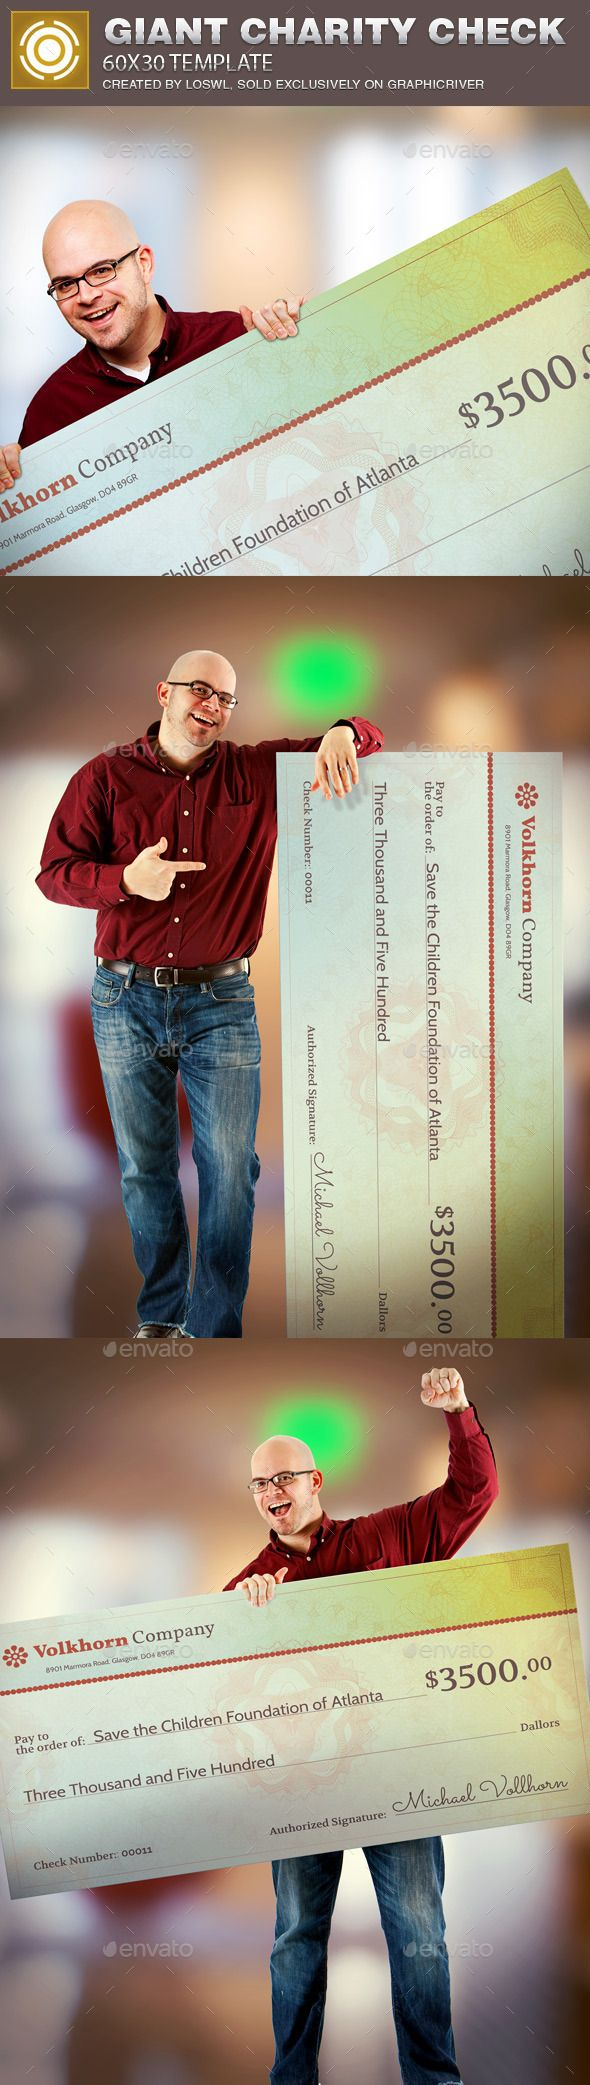 Giant Charity Check Template Is Great For Any Charity Donation Presentation Charity Checks Are A Low Cost Way To Present Charity Charity Fundraising Templates Large check for presentation template